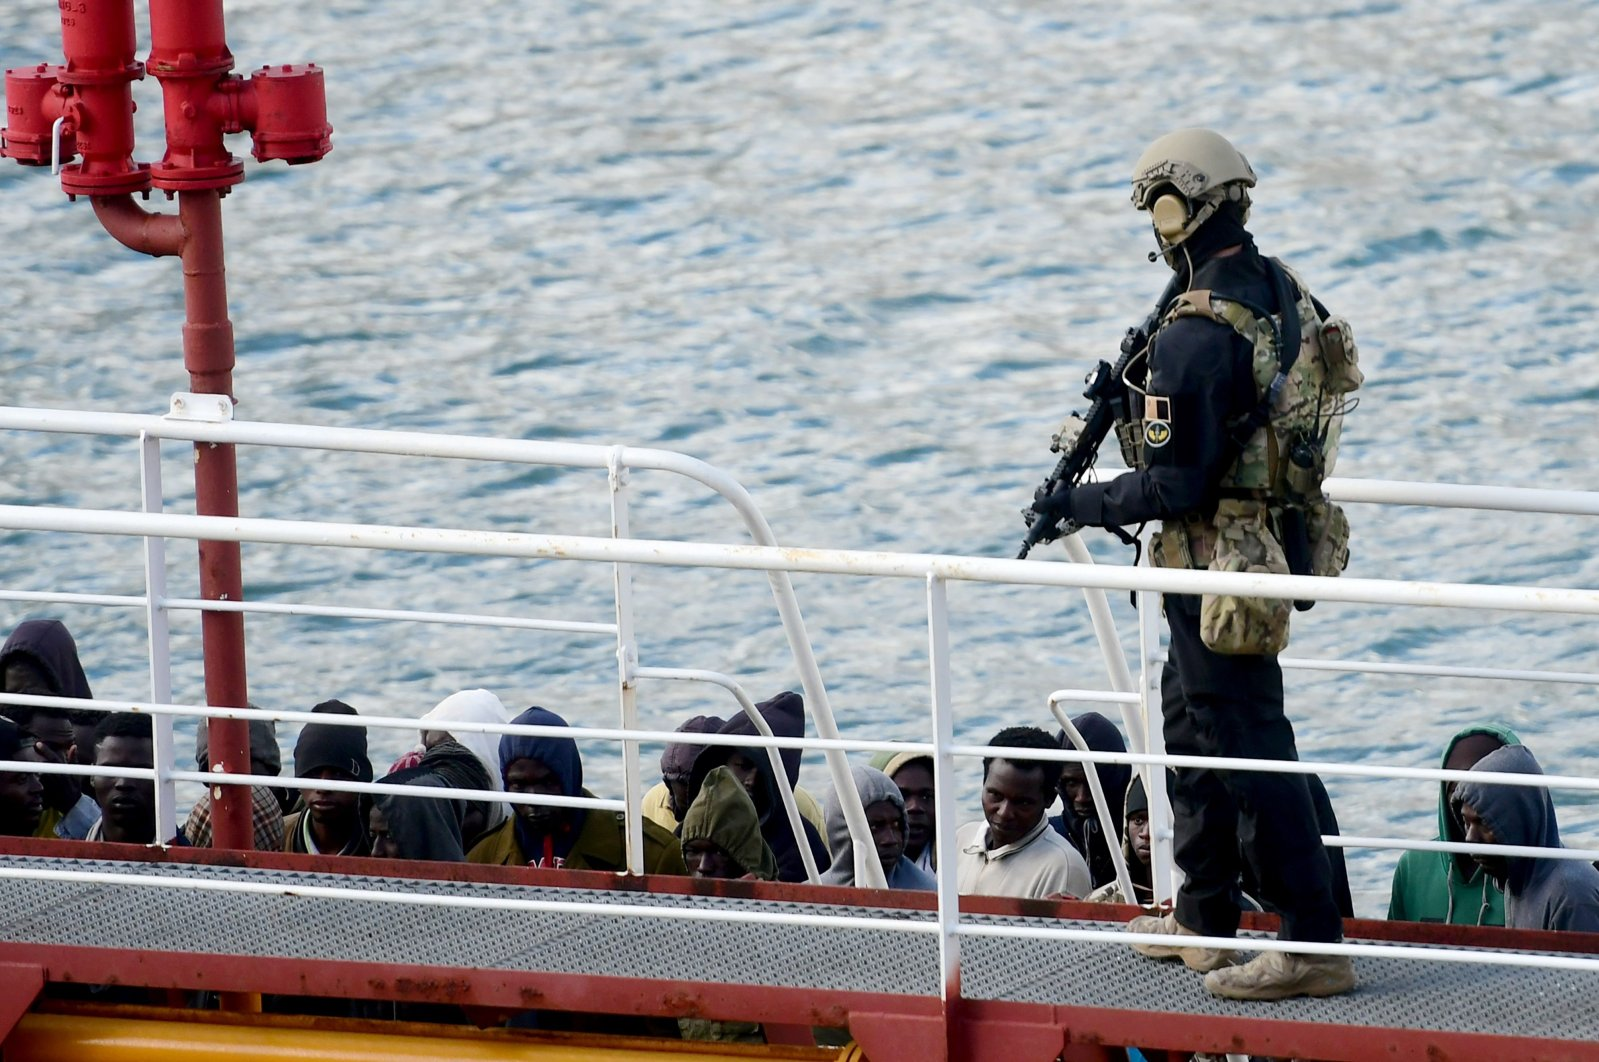 An armed policeman stands guard after migrants disembarked from the Motor Tanker El Hiblu 1 that was hijacked by migrants in Valletta's Grand Harbour on March 28, 2019, after Maltese armed forces took control of the vessel. (AFP Photo)